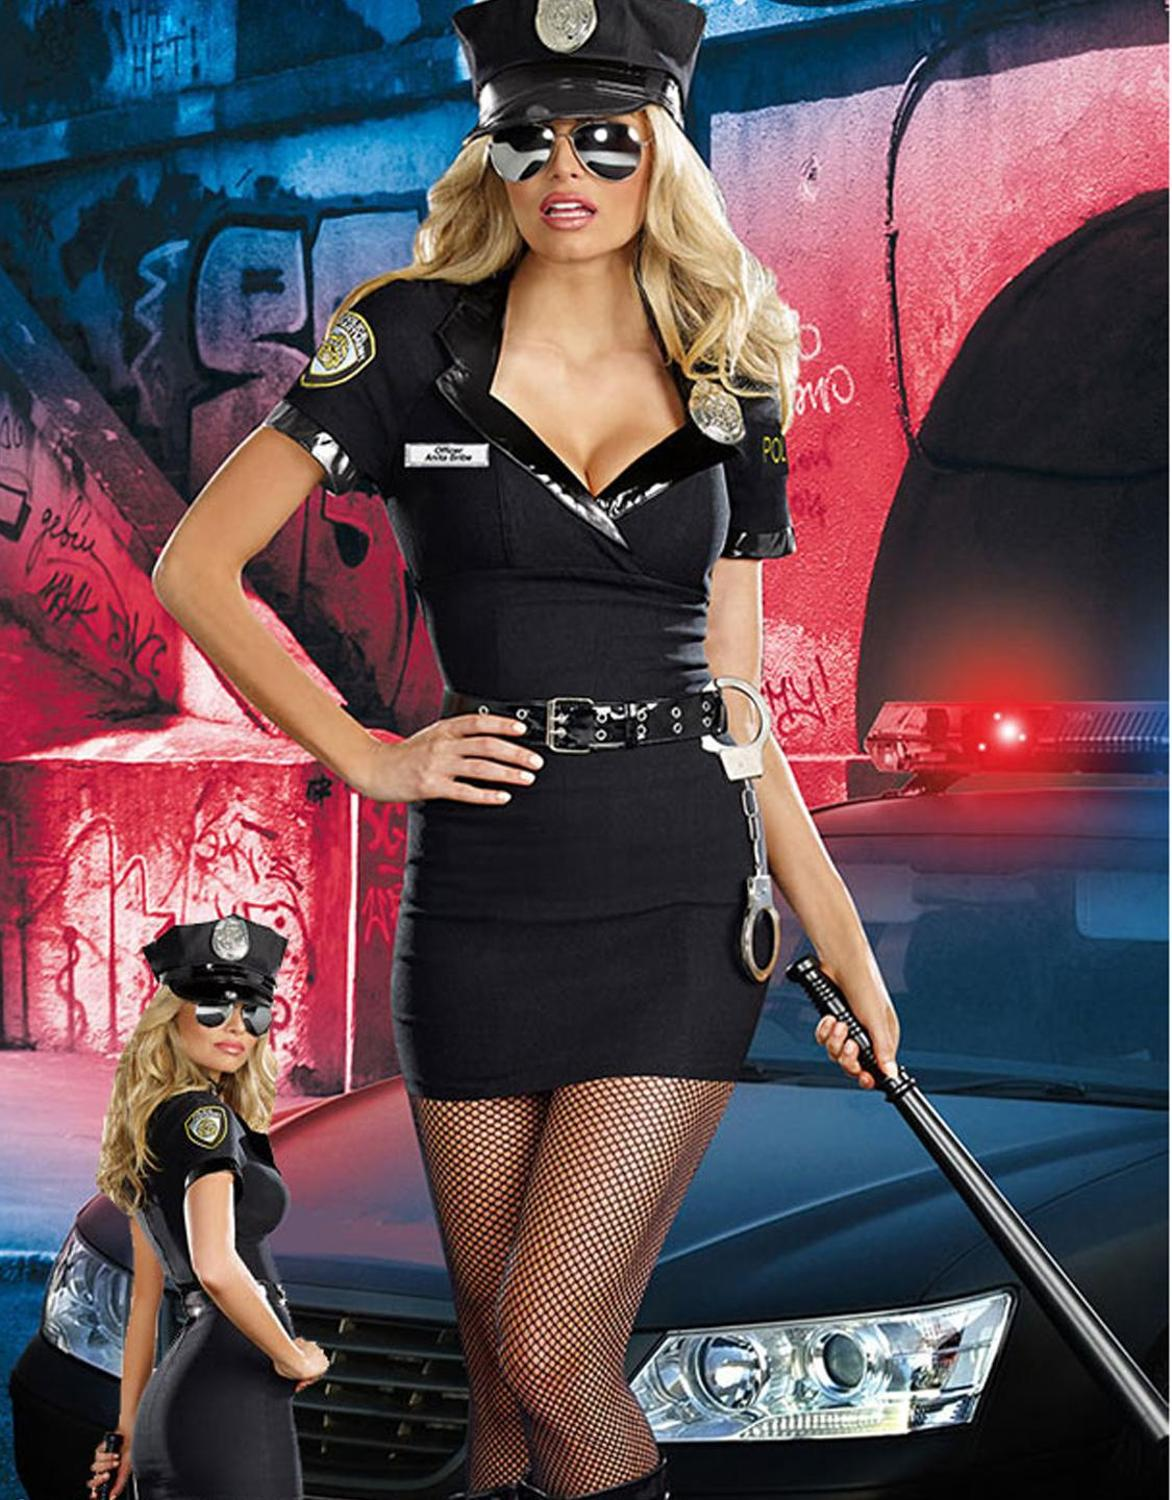 Dirty <font><b>Cop</b></font> Officer Anita Bribe Costume <font><b>Sexy</b></font> Female <font><b>Cop</b></font> Officer Uniform Policewomen Costume Halloween Adult Cosplay Fancy Dress image